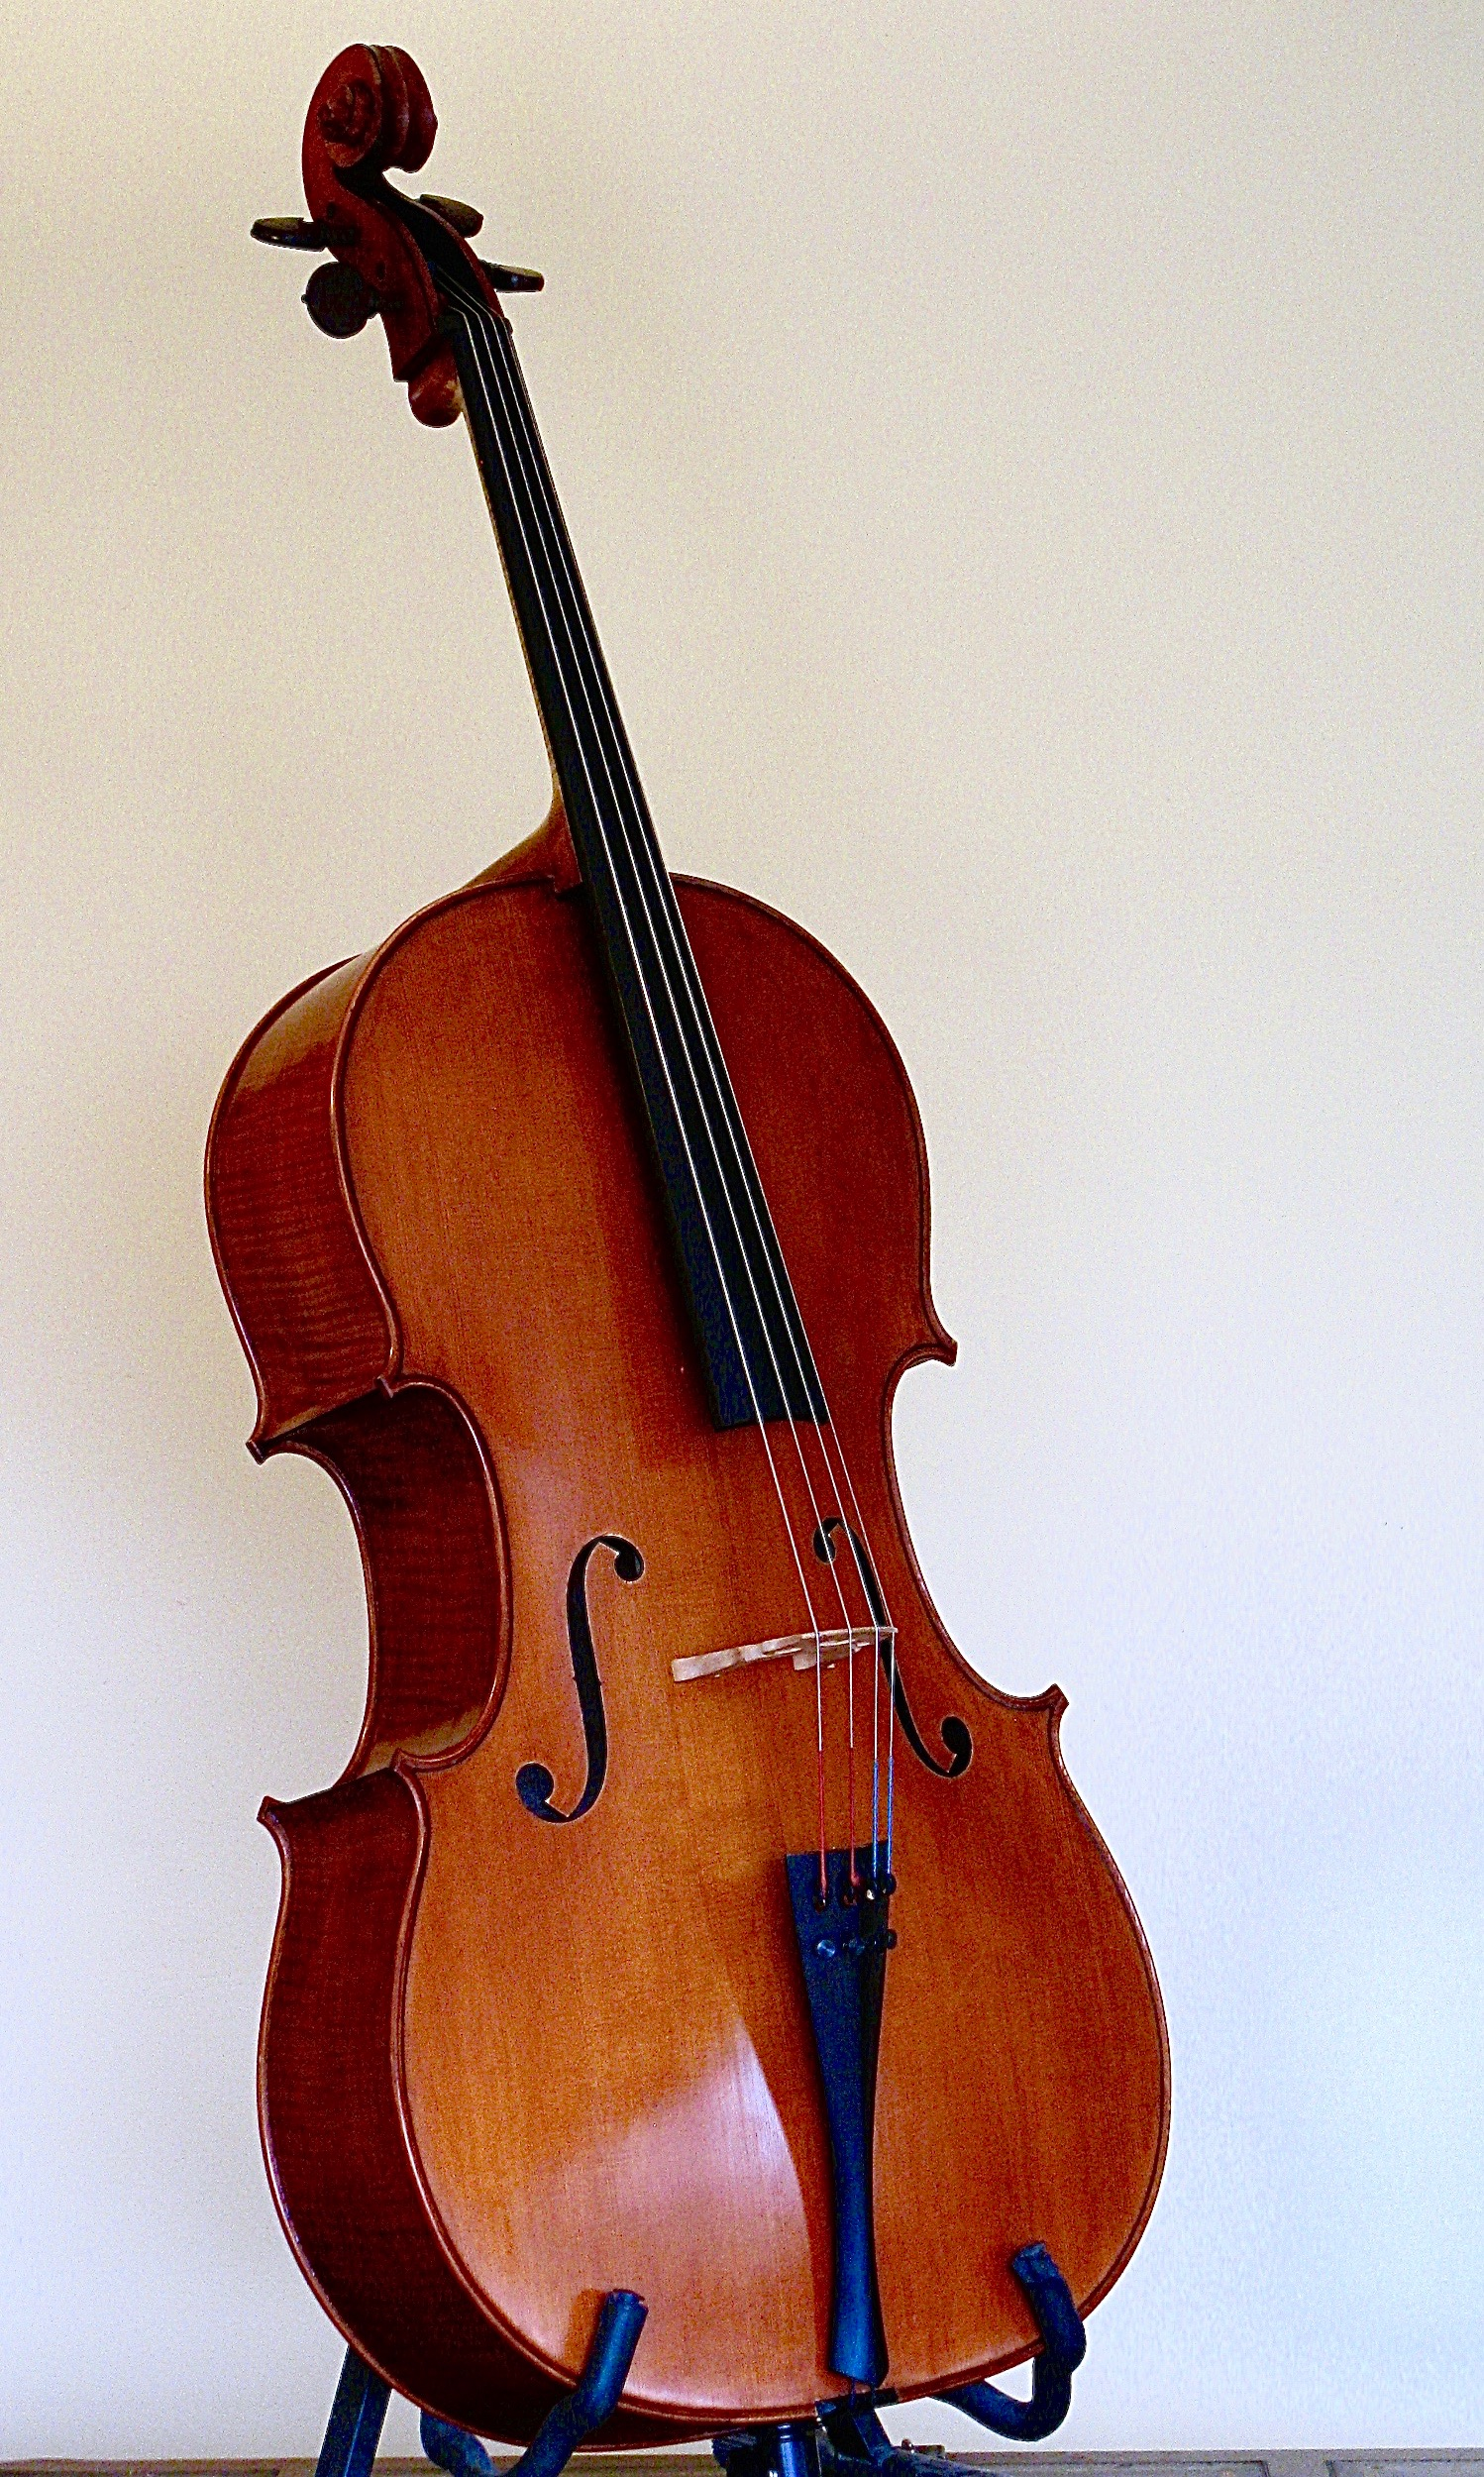 Finished cello